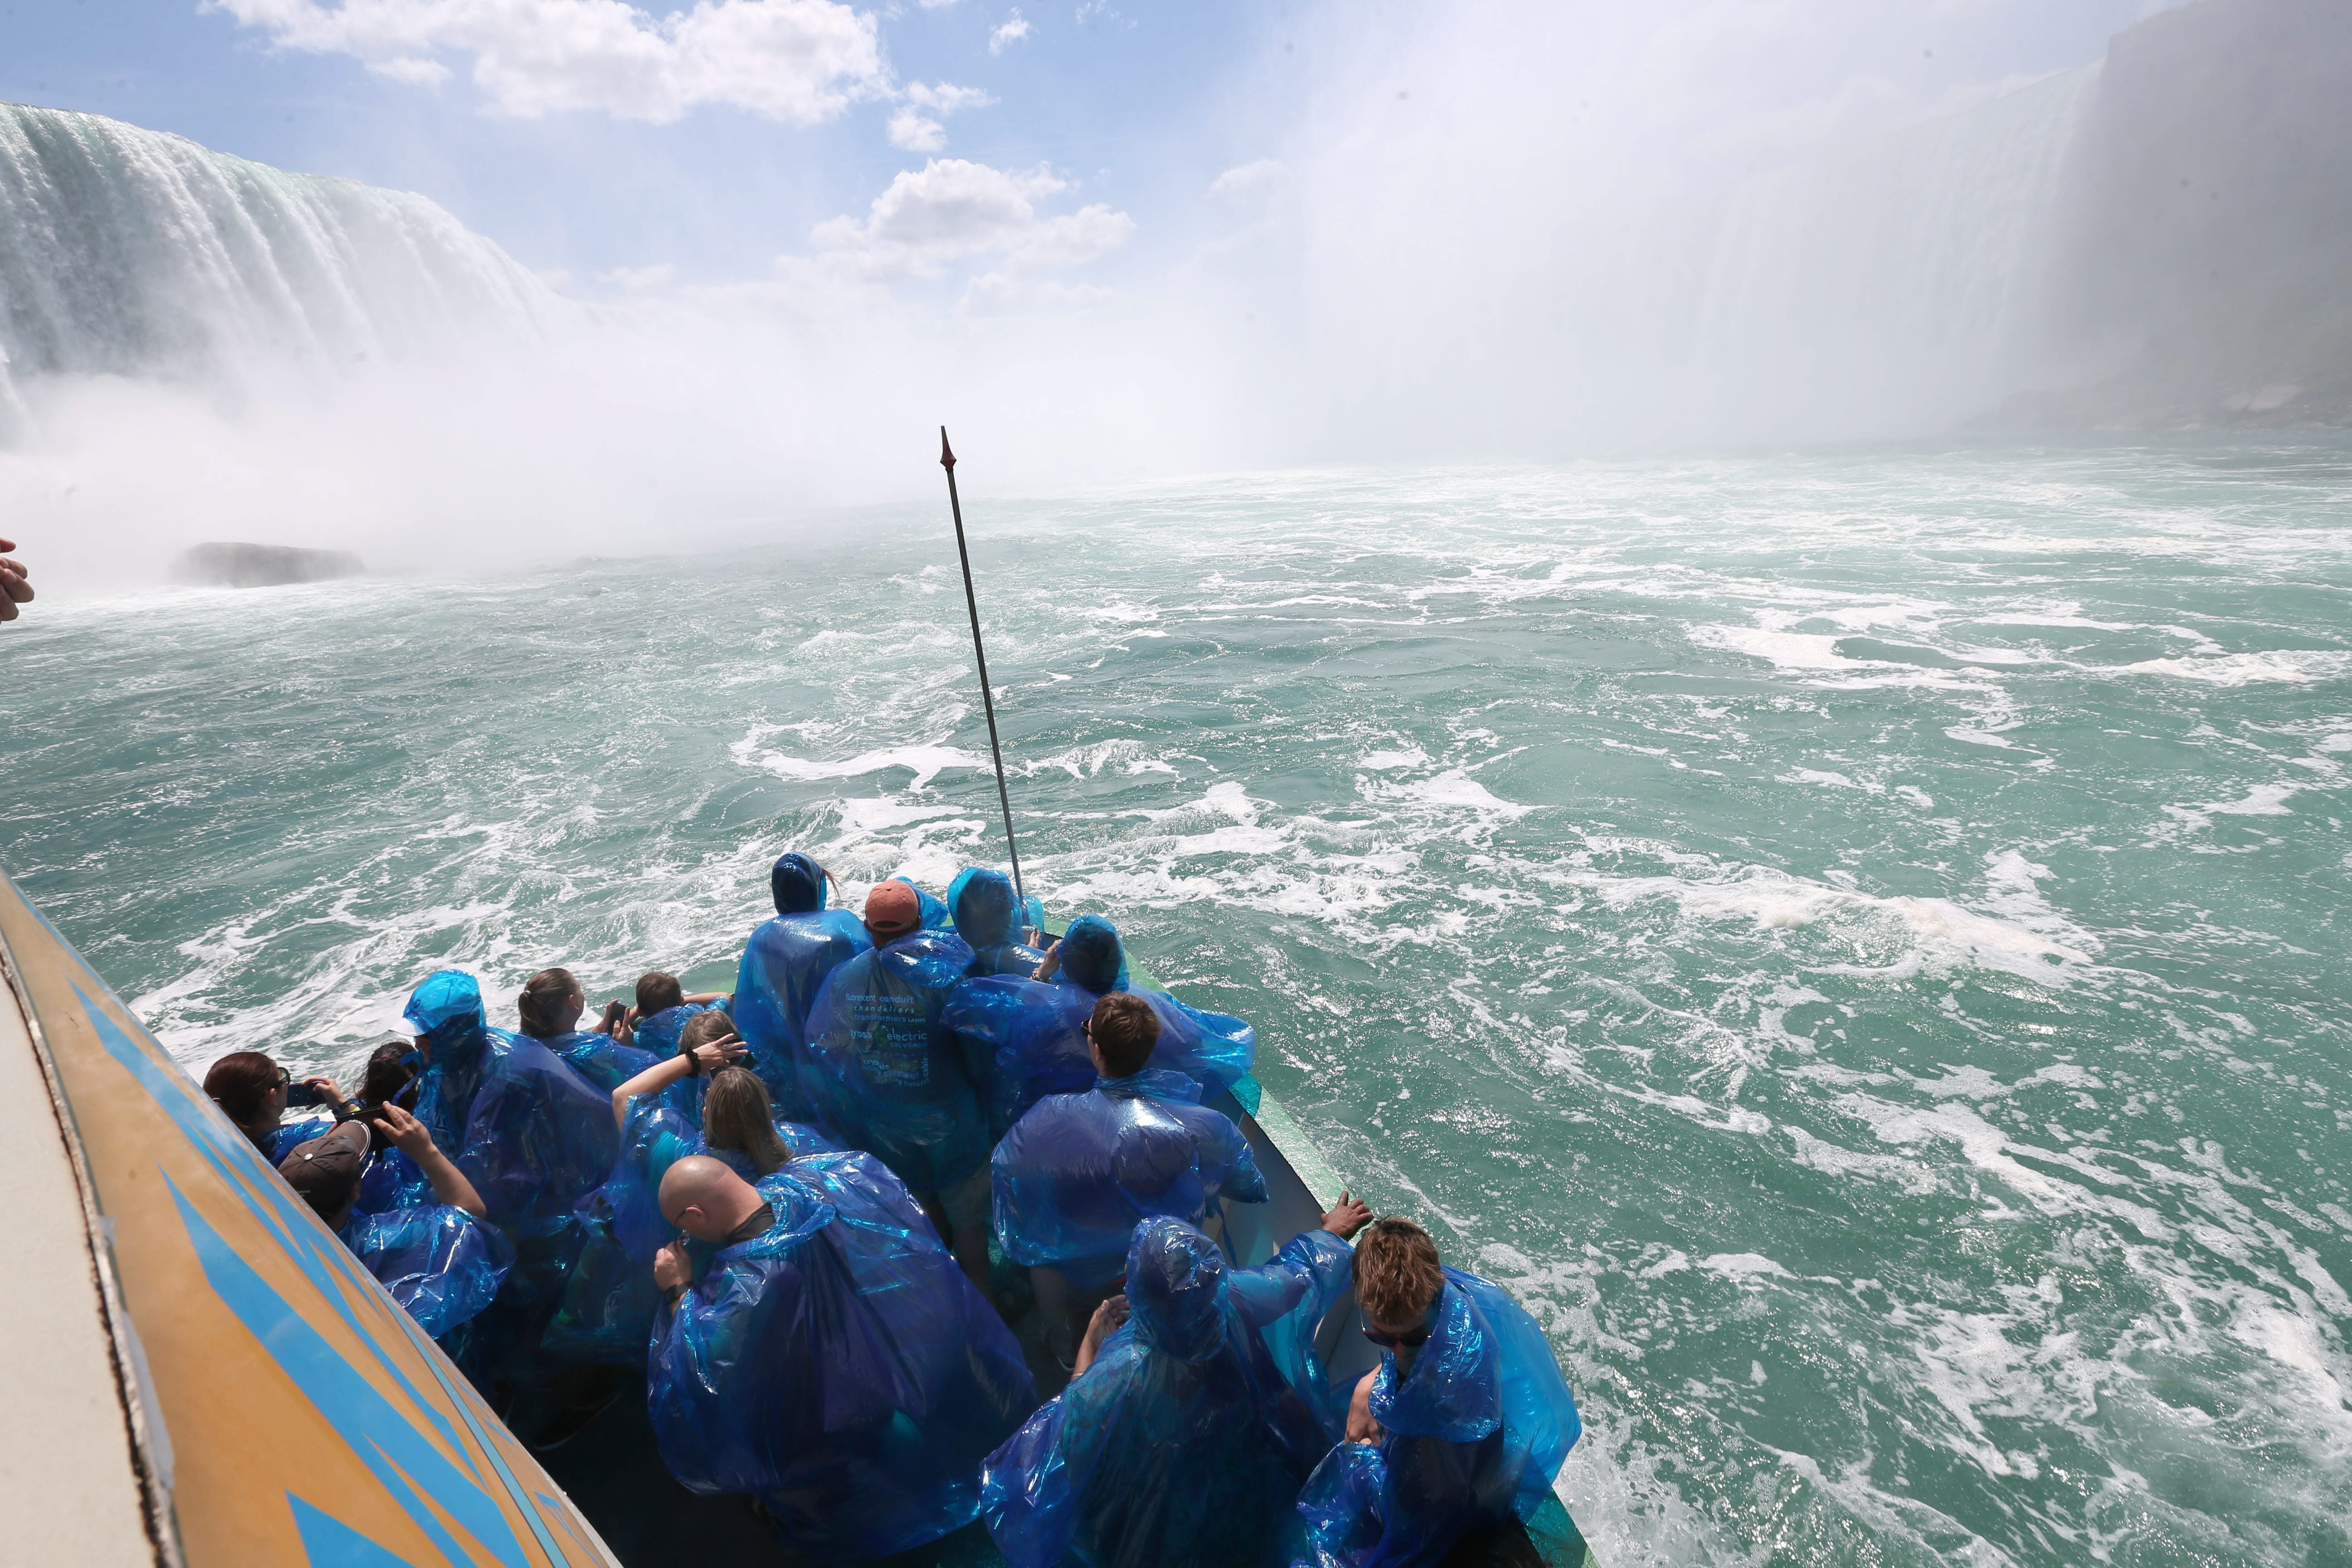 """Riding the Maid of the Mist is one of the highlights of visiting Niagara Falls. The attraction's most recent season showed """"every indication of continued significant increases in the number of guests,"""" the company said in a statement."""